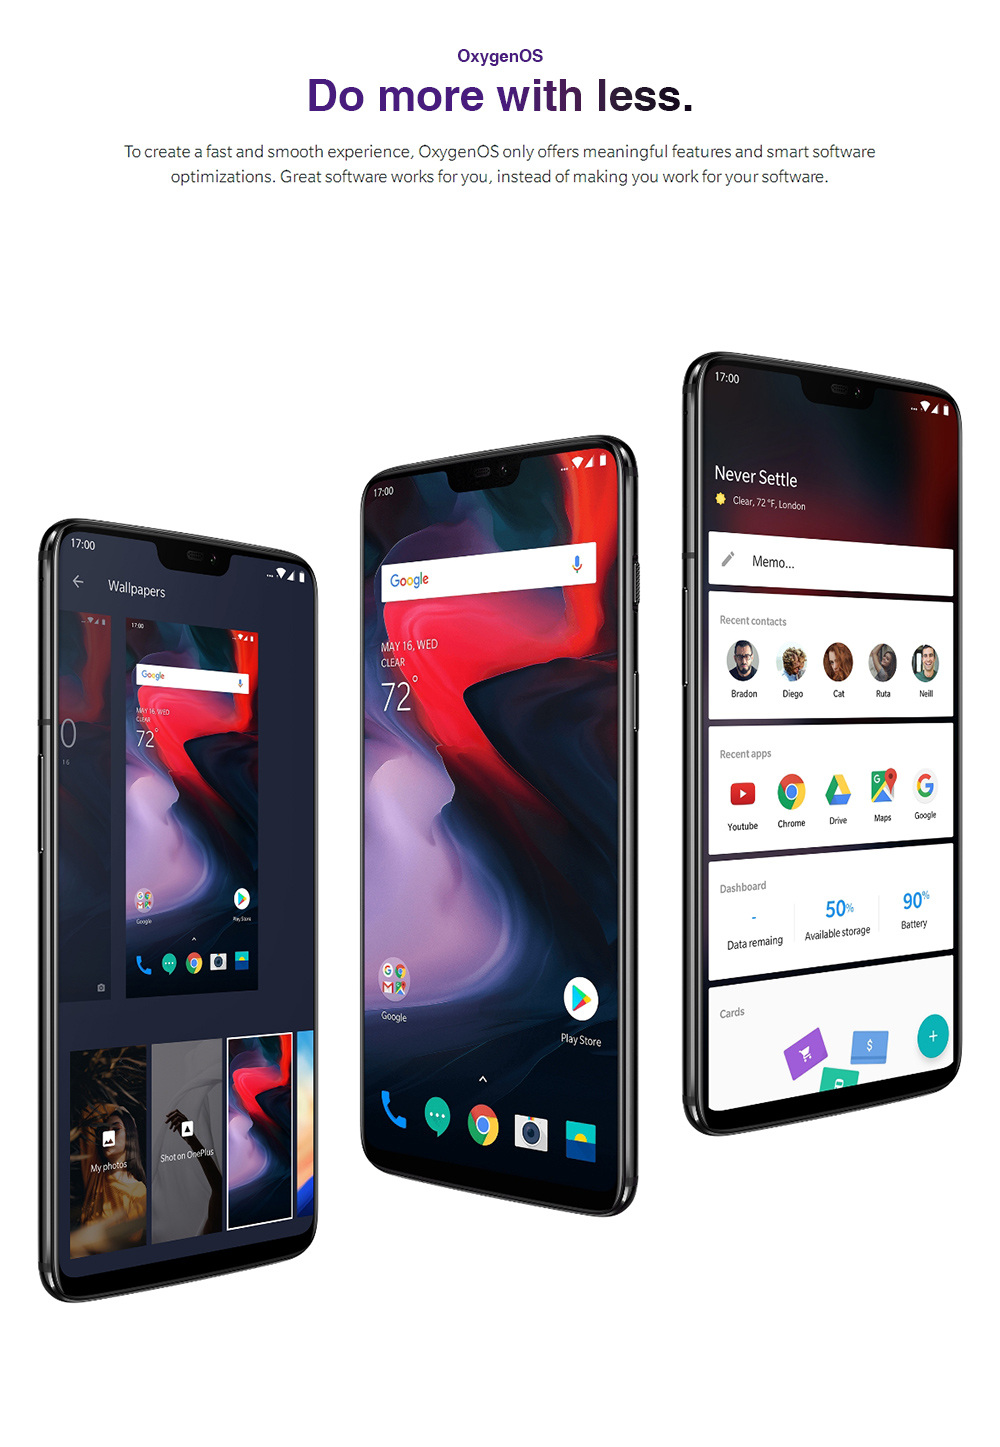 Oneplus 6 6.28 Inch Full Screen 4G Smartphone Snapdragon 845 Soc 6GB 64GB 20.0MP+16.0MP Dual Rear Cameras Android 8.1 NFC Dash Charge Type-C - Mirror Black